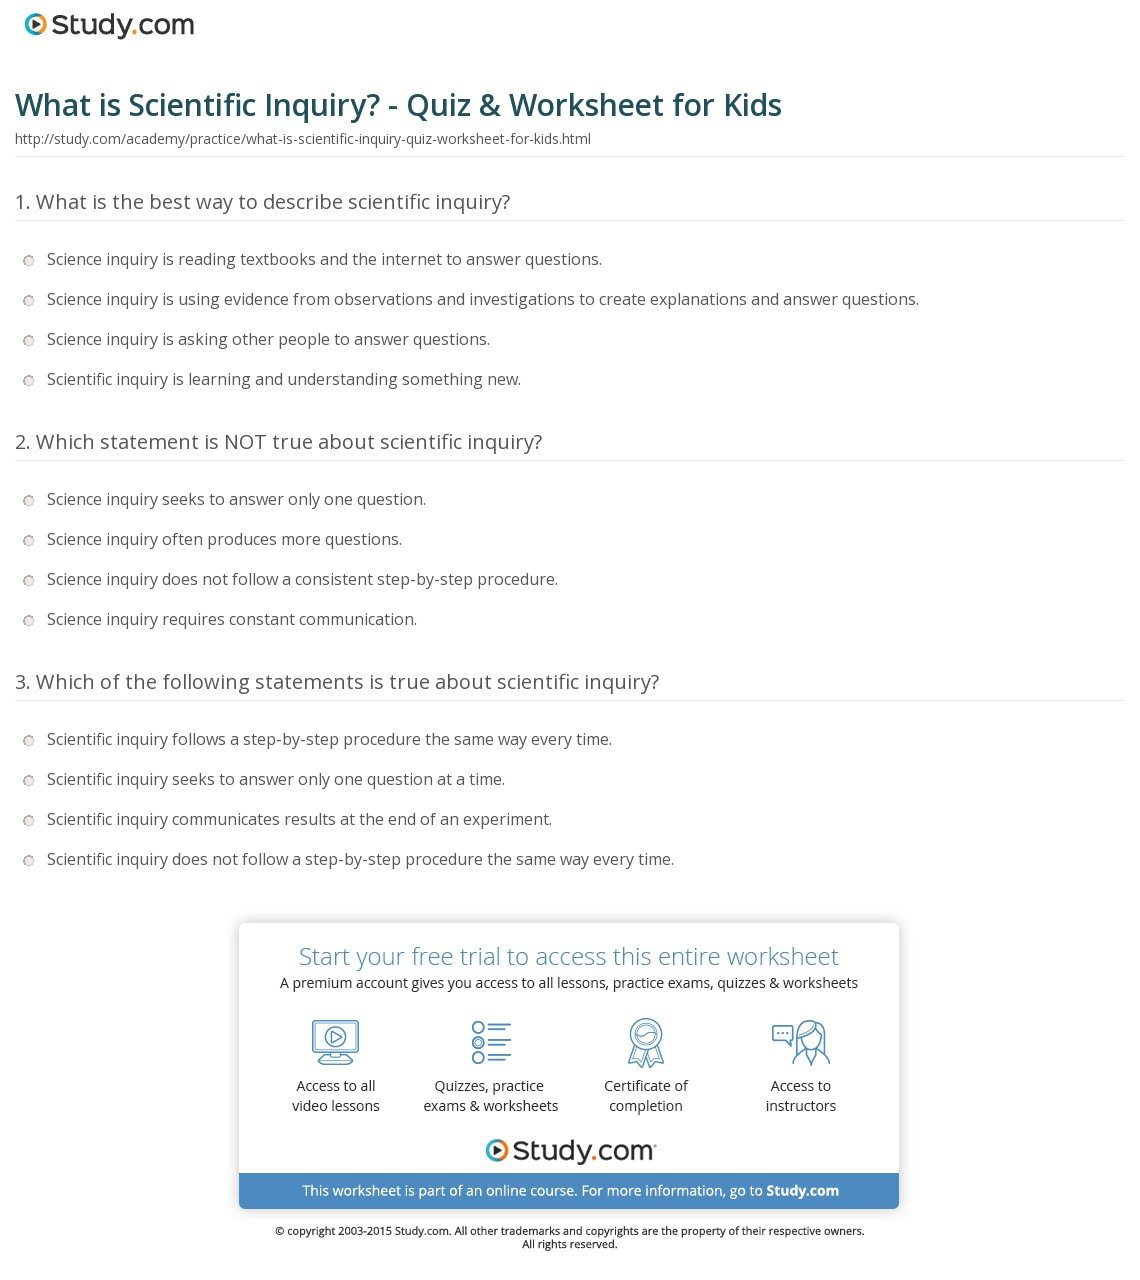 Scientific Inquiry Worksheet Answers